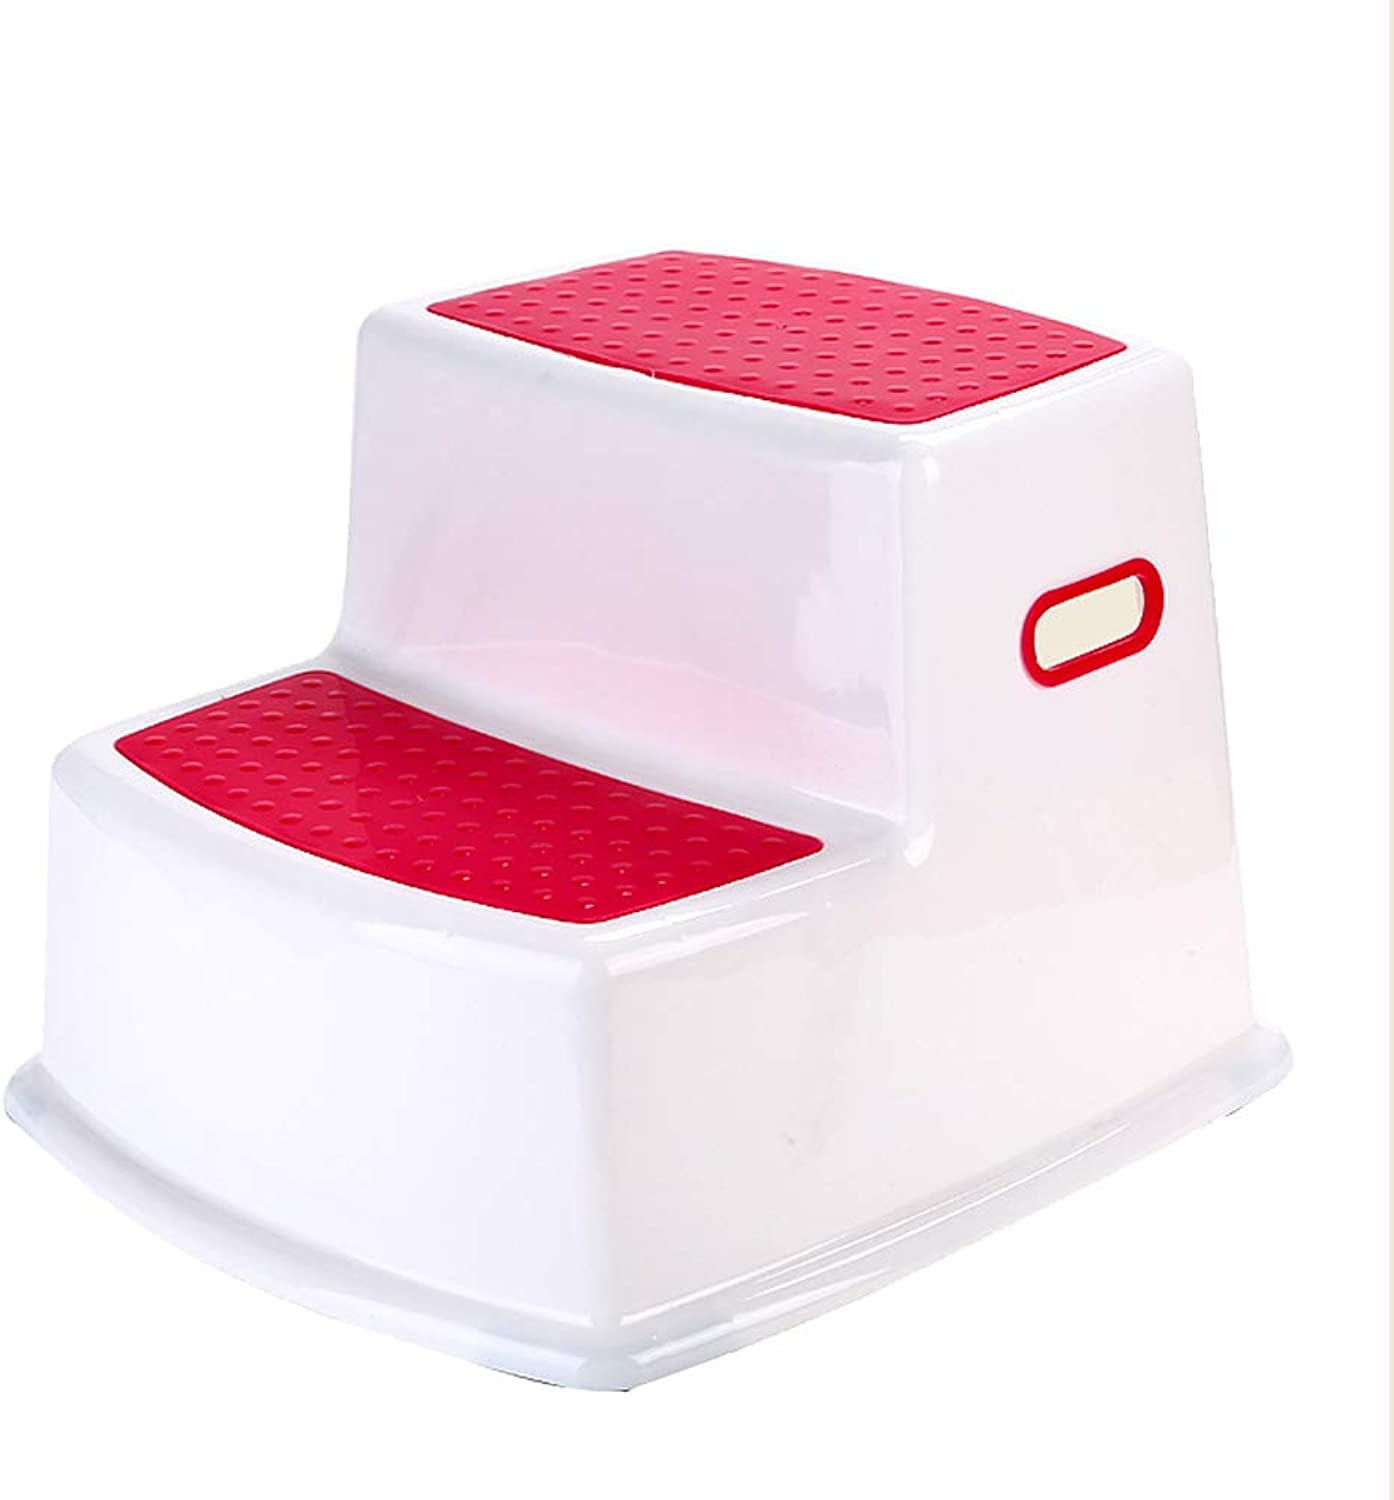 2 Steps Foot Stool for Baby Kids Toddler Training Plastic Small Seat Non Slip Bathroom Living Room Ascend High Use (color   Red)